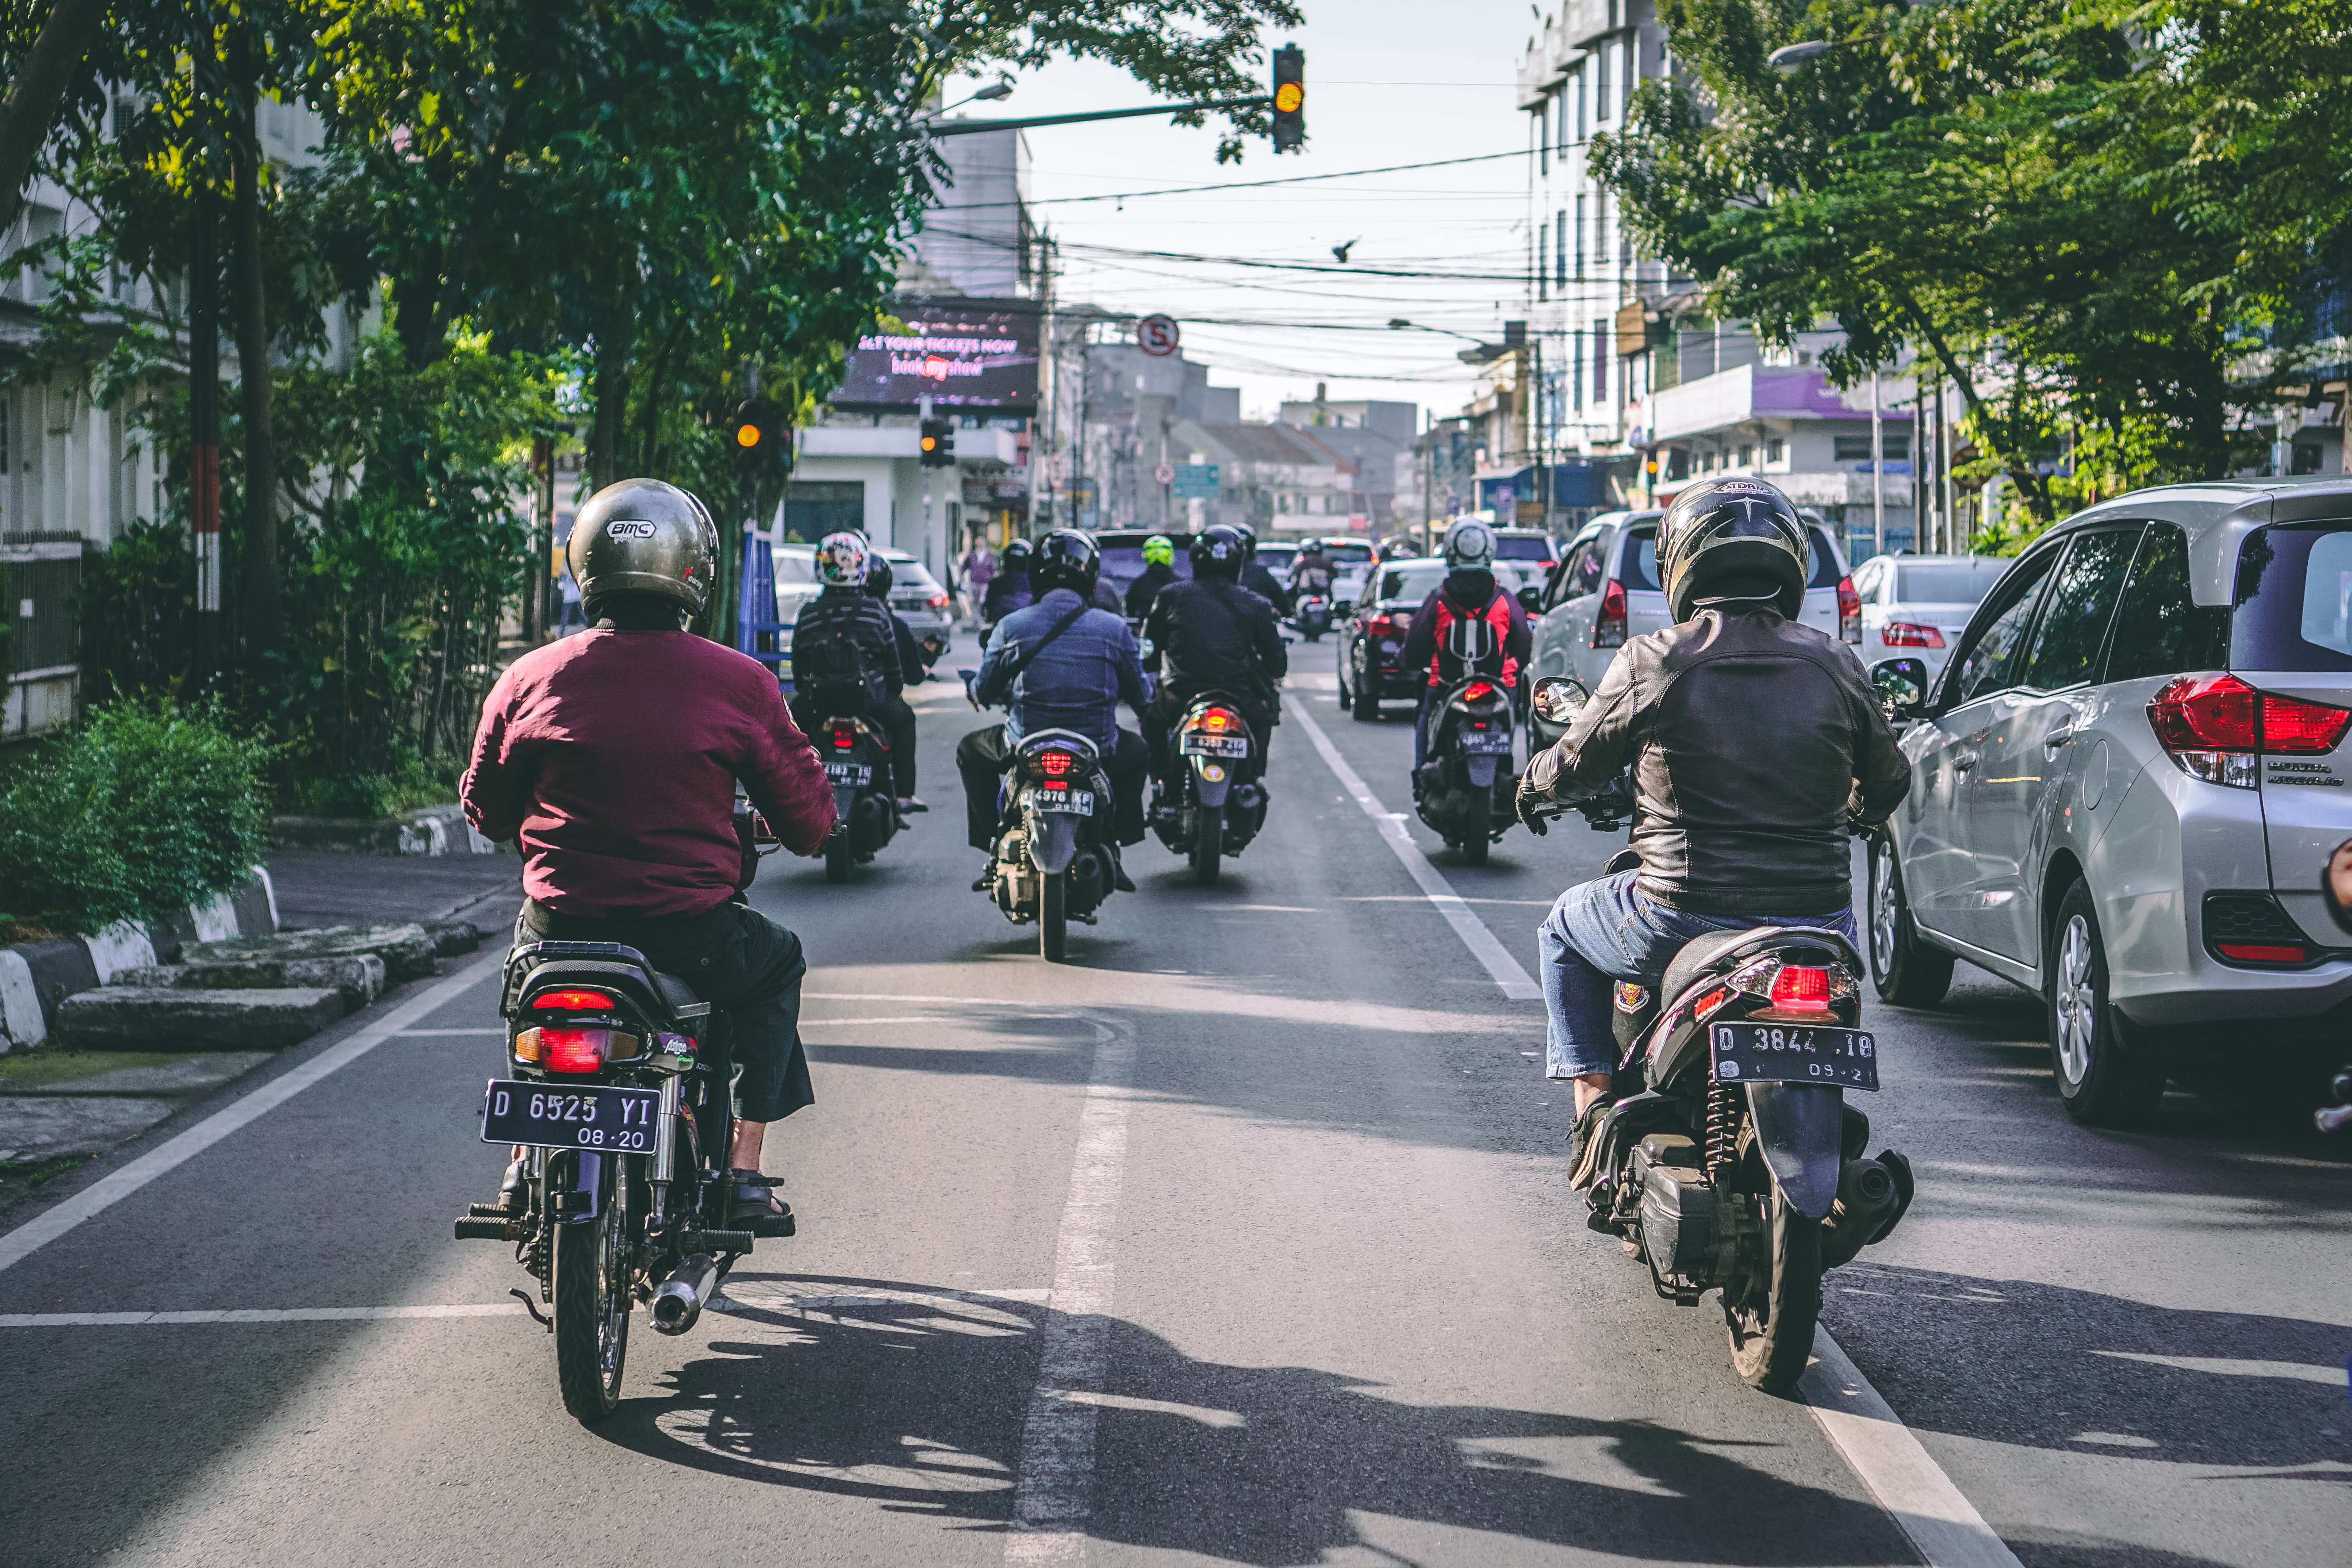 motorcycles and vehicles on road at daytime